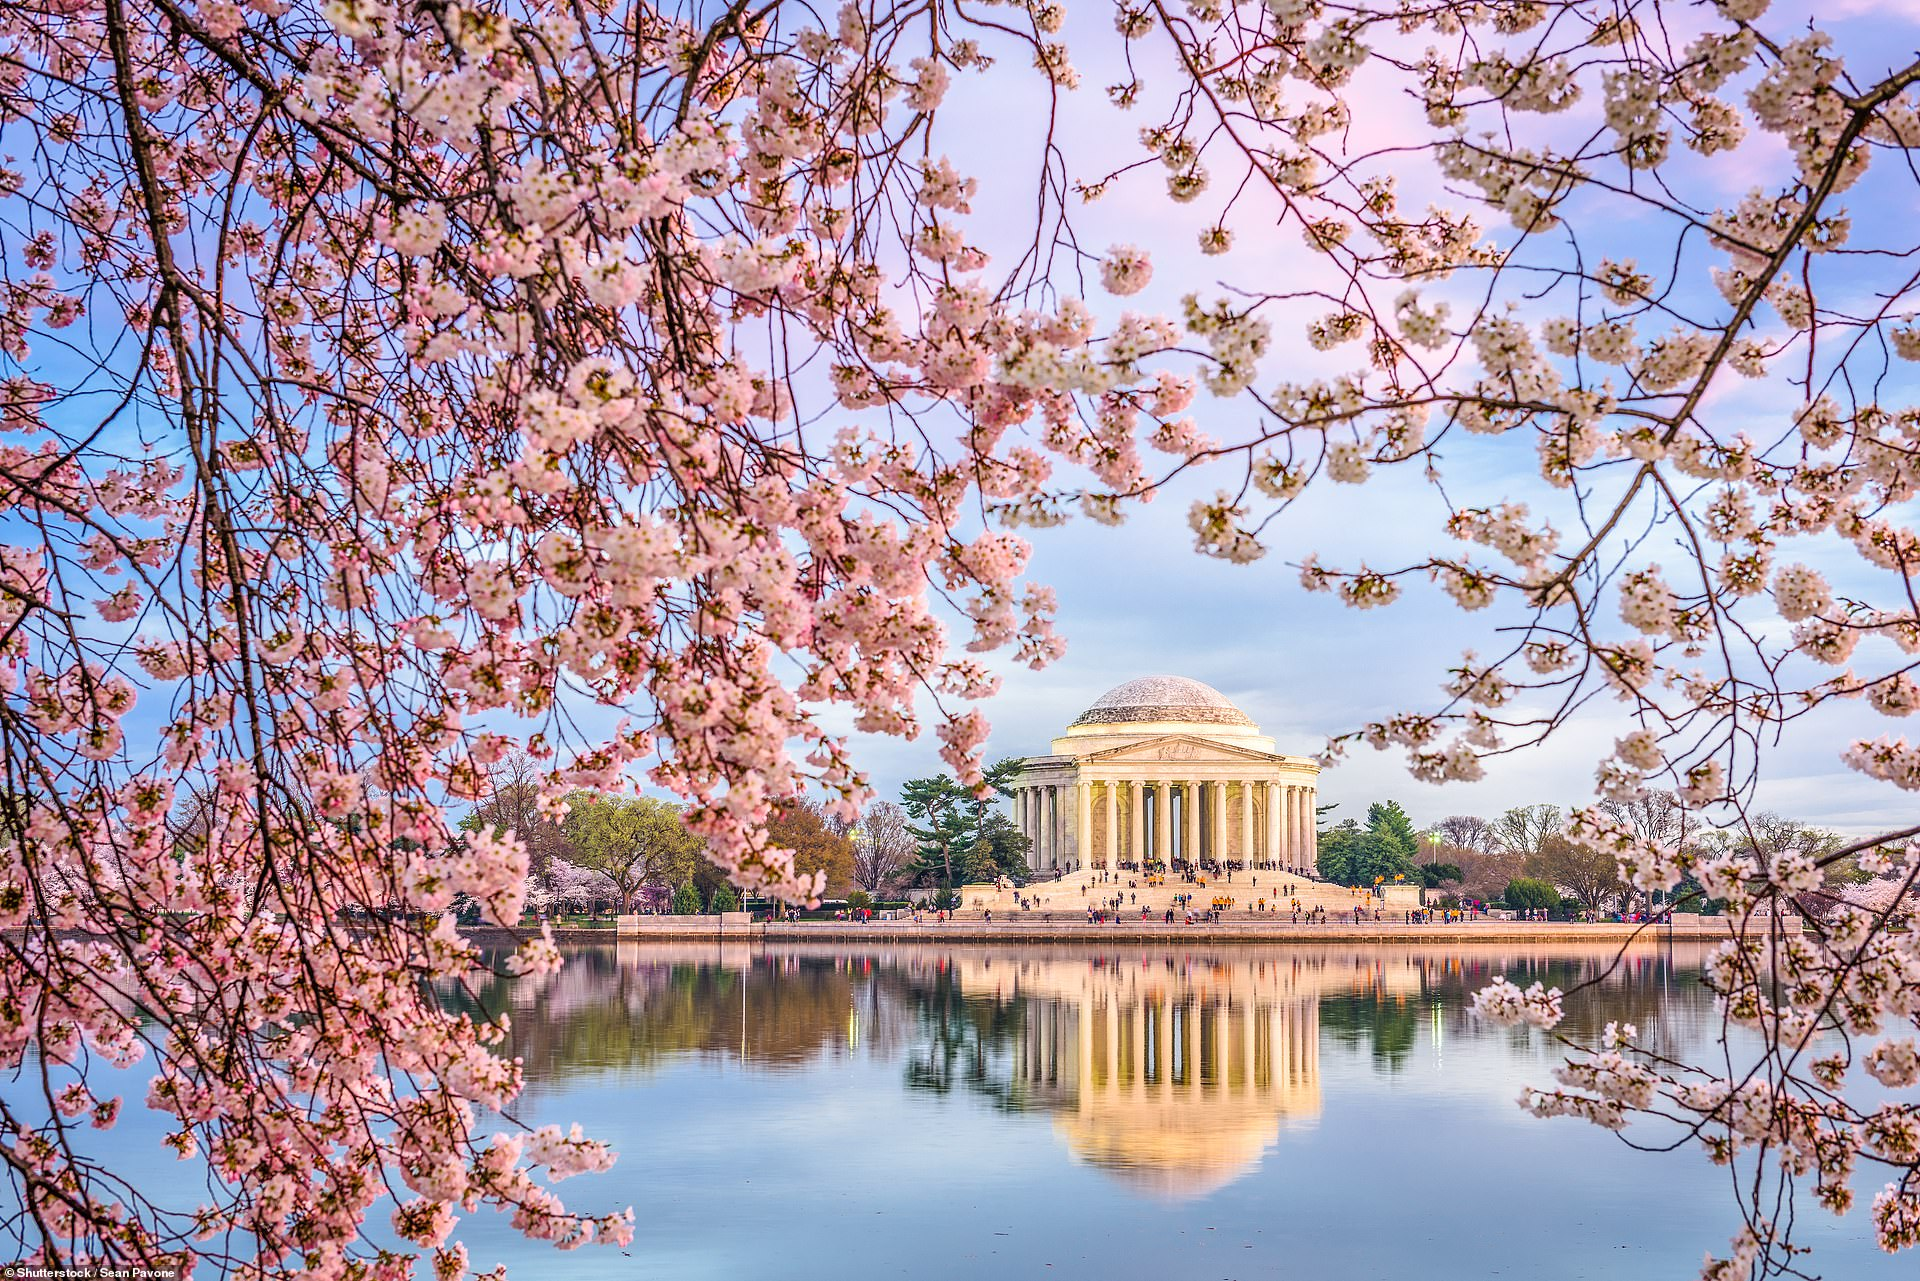 jeffersonmemorial_washingtondc.jpg